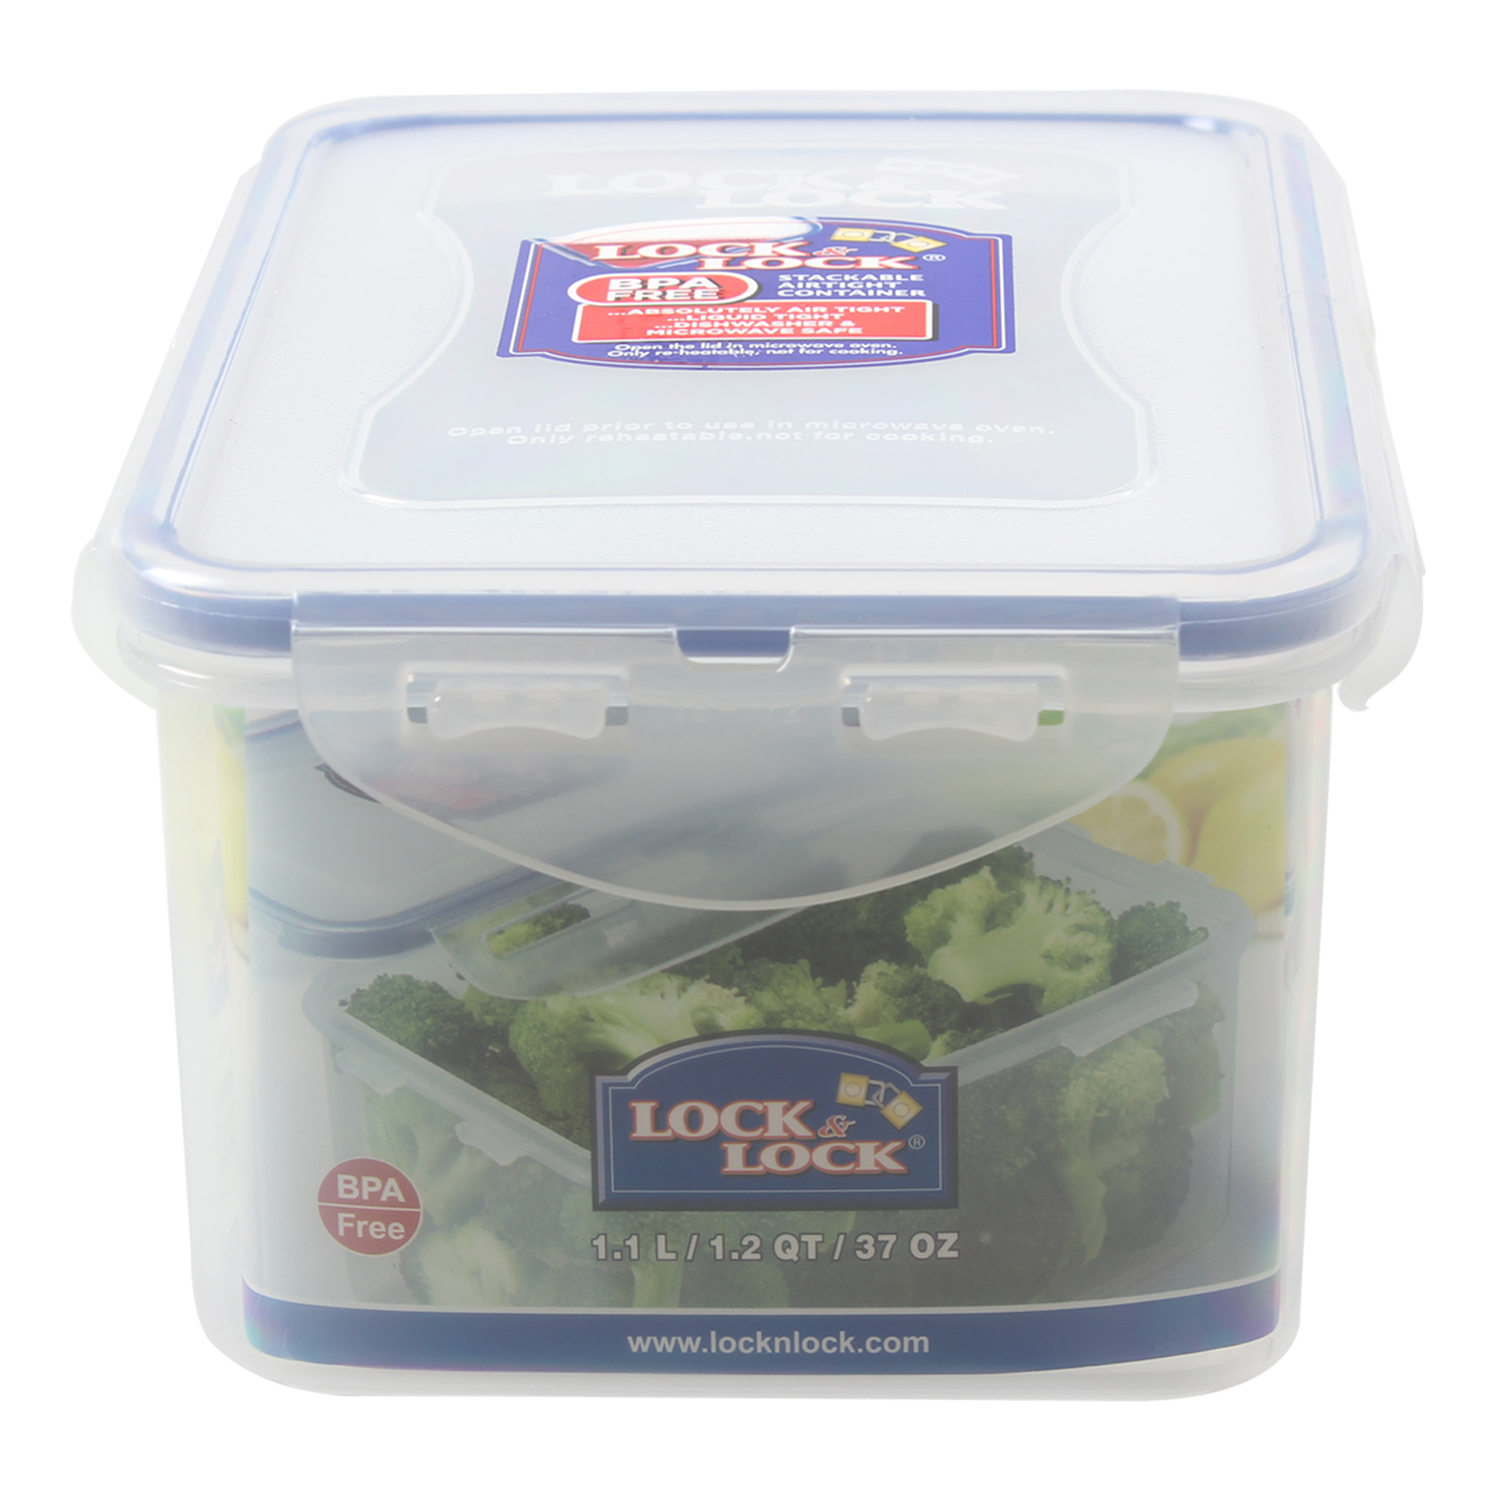 Lock 11 Litre High Quality Rectangular Storage Airtight Food Locklock Container Classics 26l Hpl826 The Unique Patented System Brings Together Superb Design Manufacturing Innovative Silicone Seals And Four Separate Locking Hinges